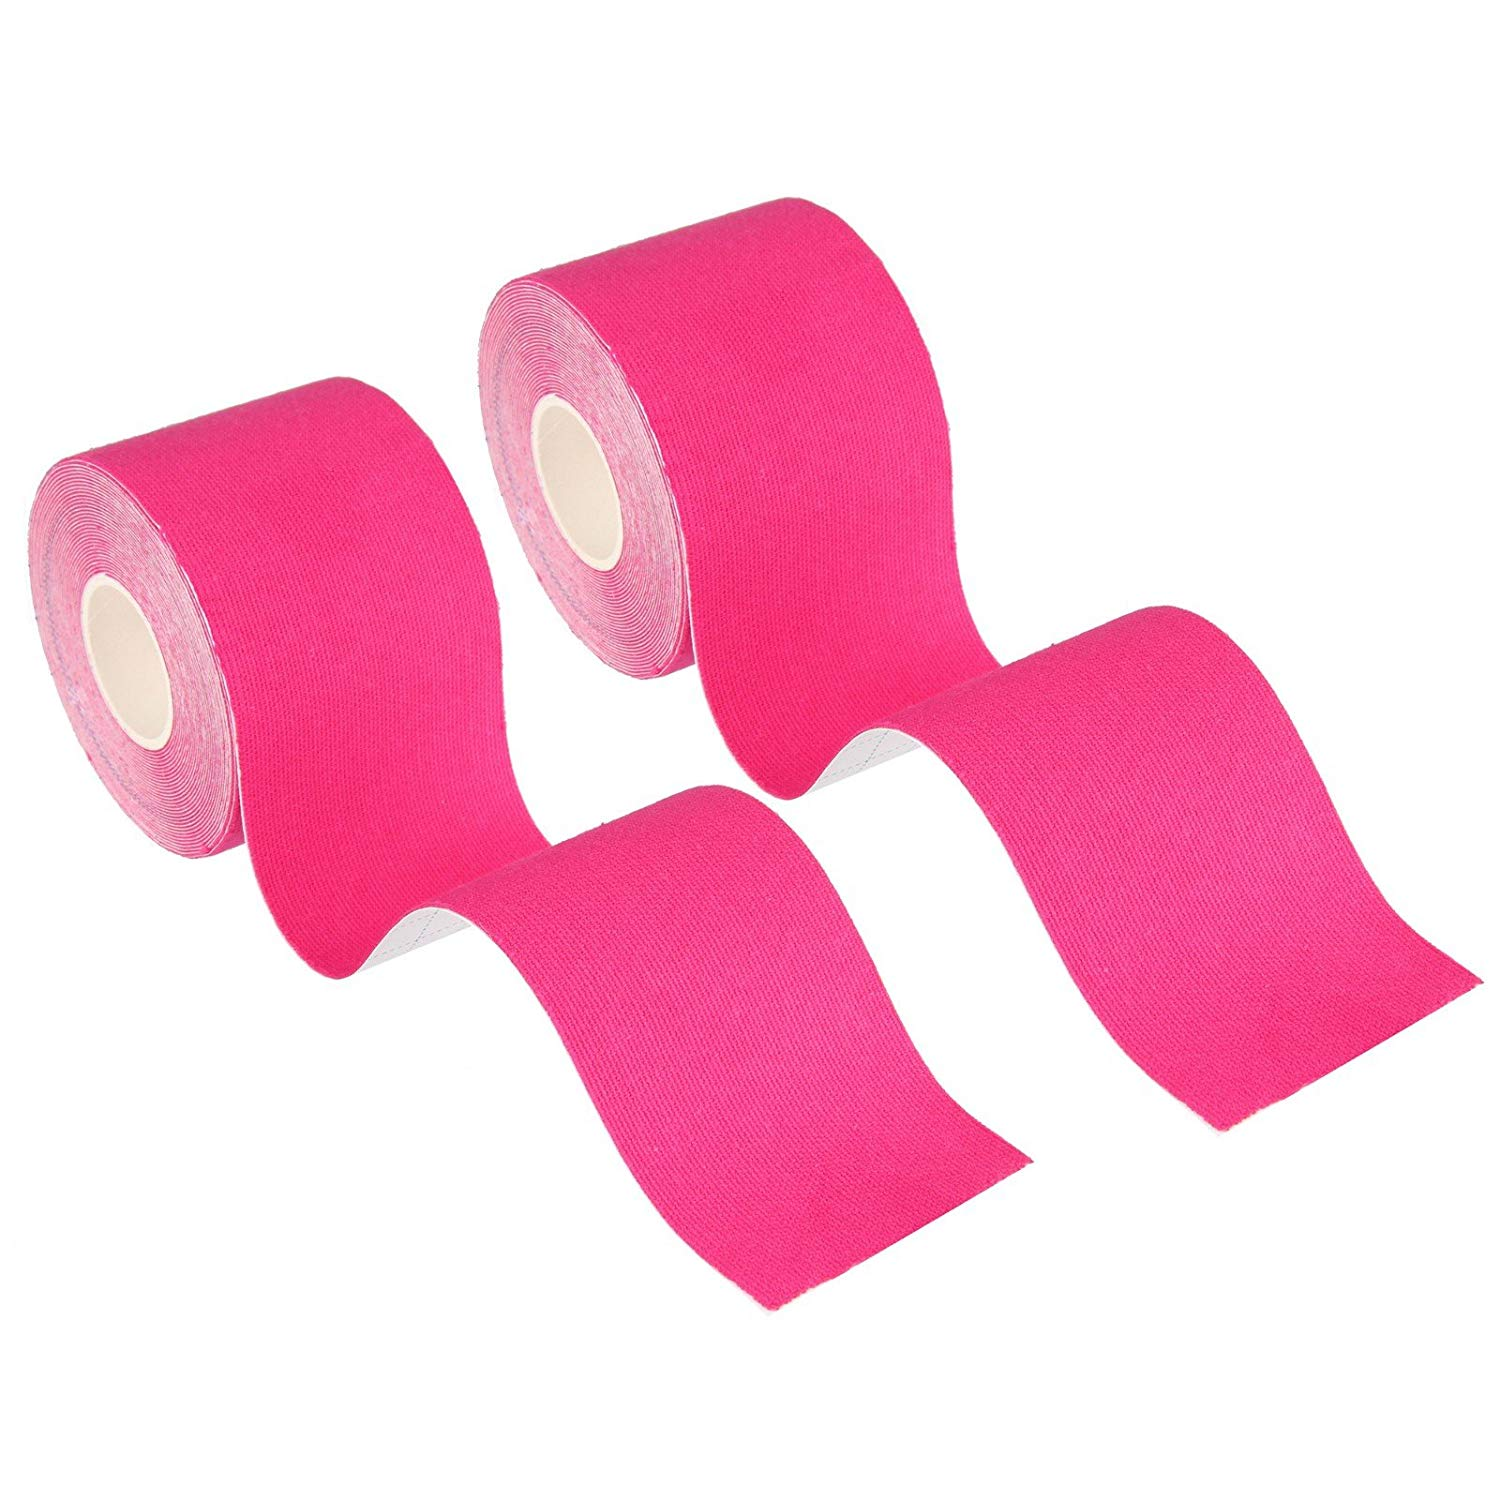 """Beauty7 Kinesiology Adhesive Tape 2 Rolls Uncut Cotton Elastic Breathable Waterproof Muscle Support for Athletic Sports Aid Recovery and Physio Therapy Knee Shoulder Elbow (Rose Red, 1""""W x 16.4'L)"""